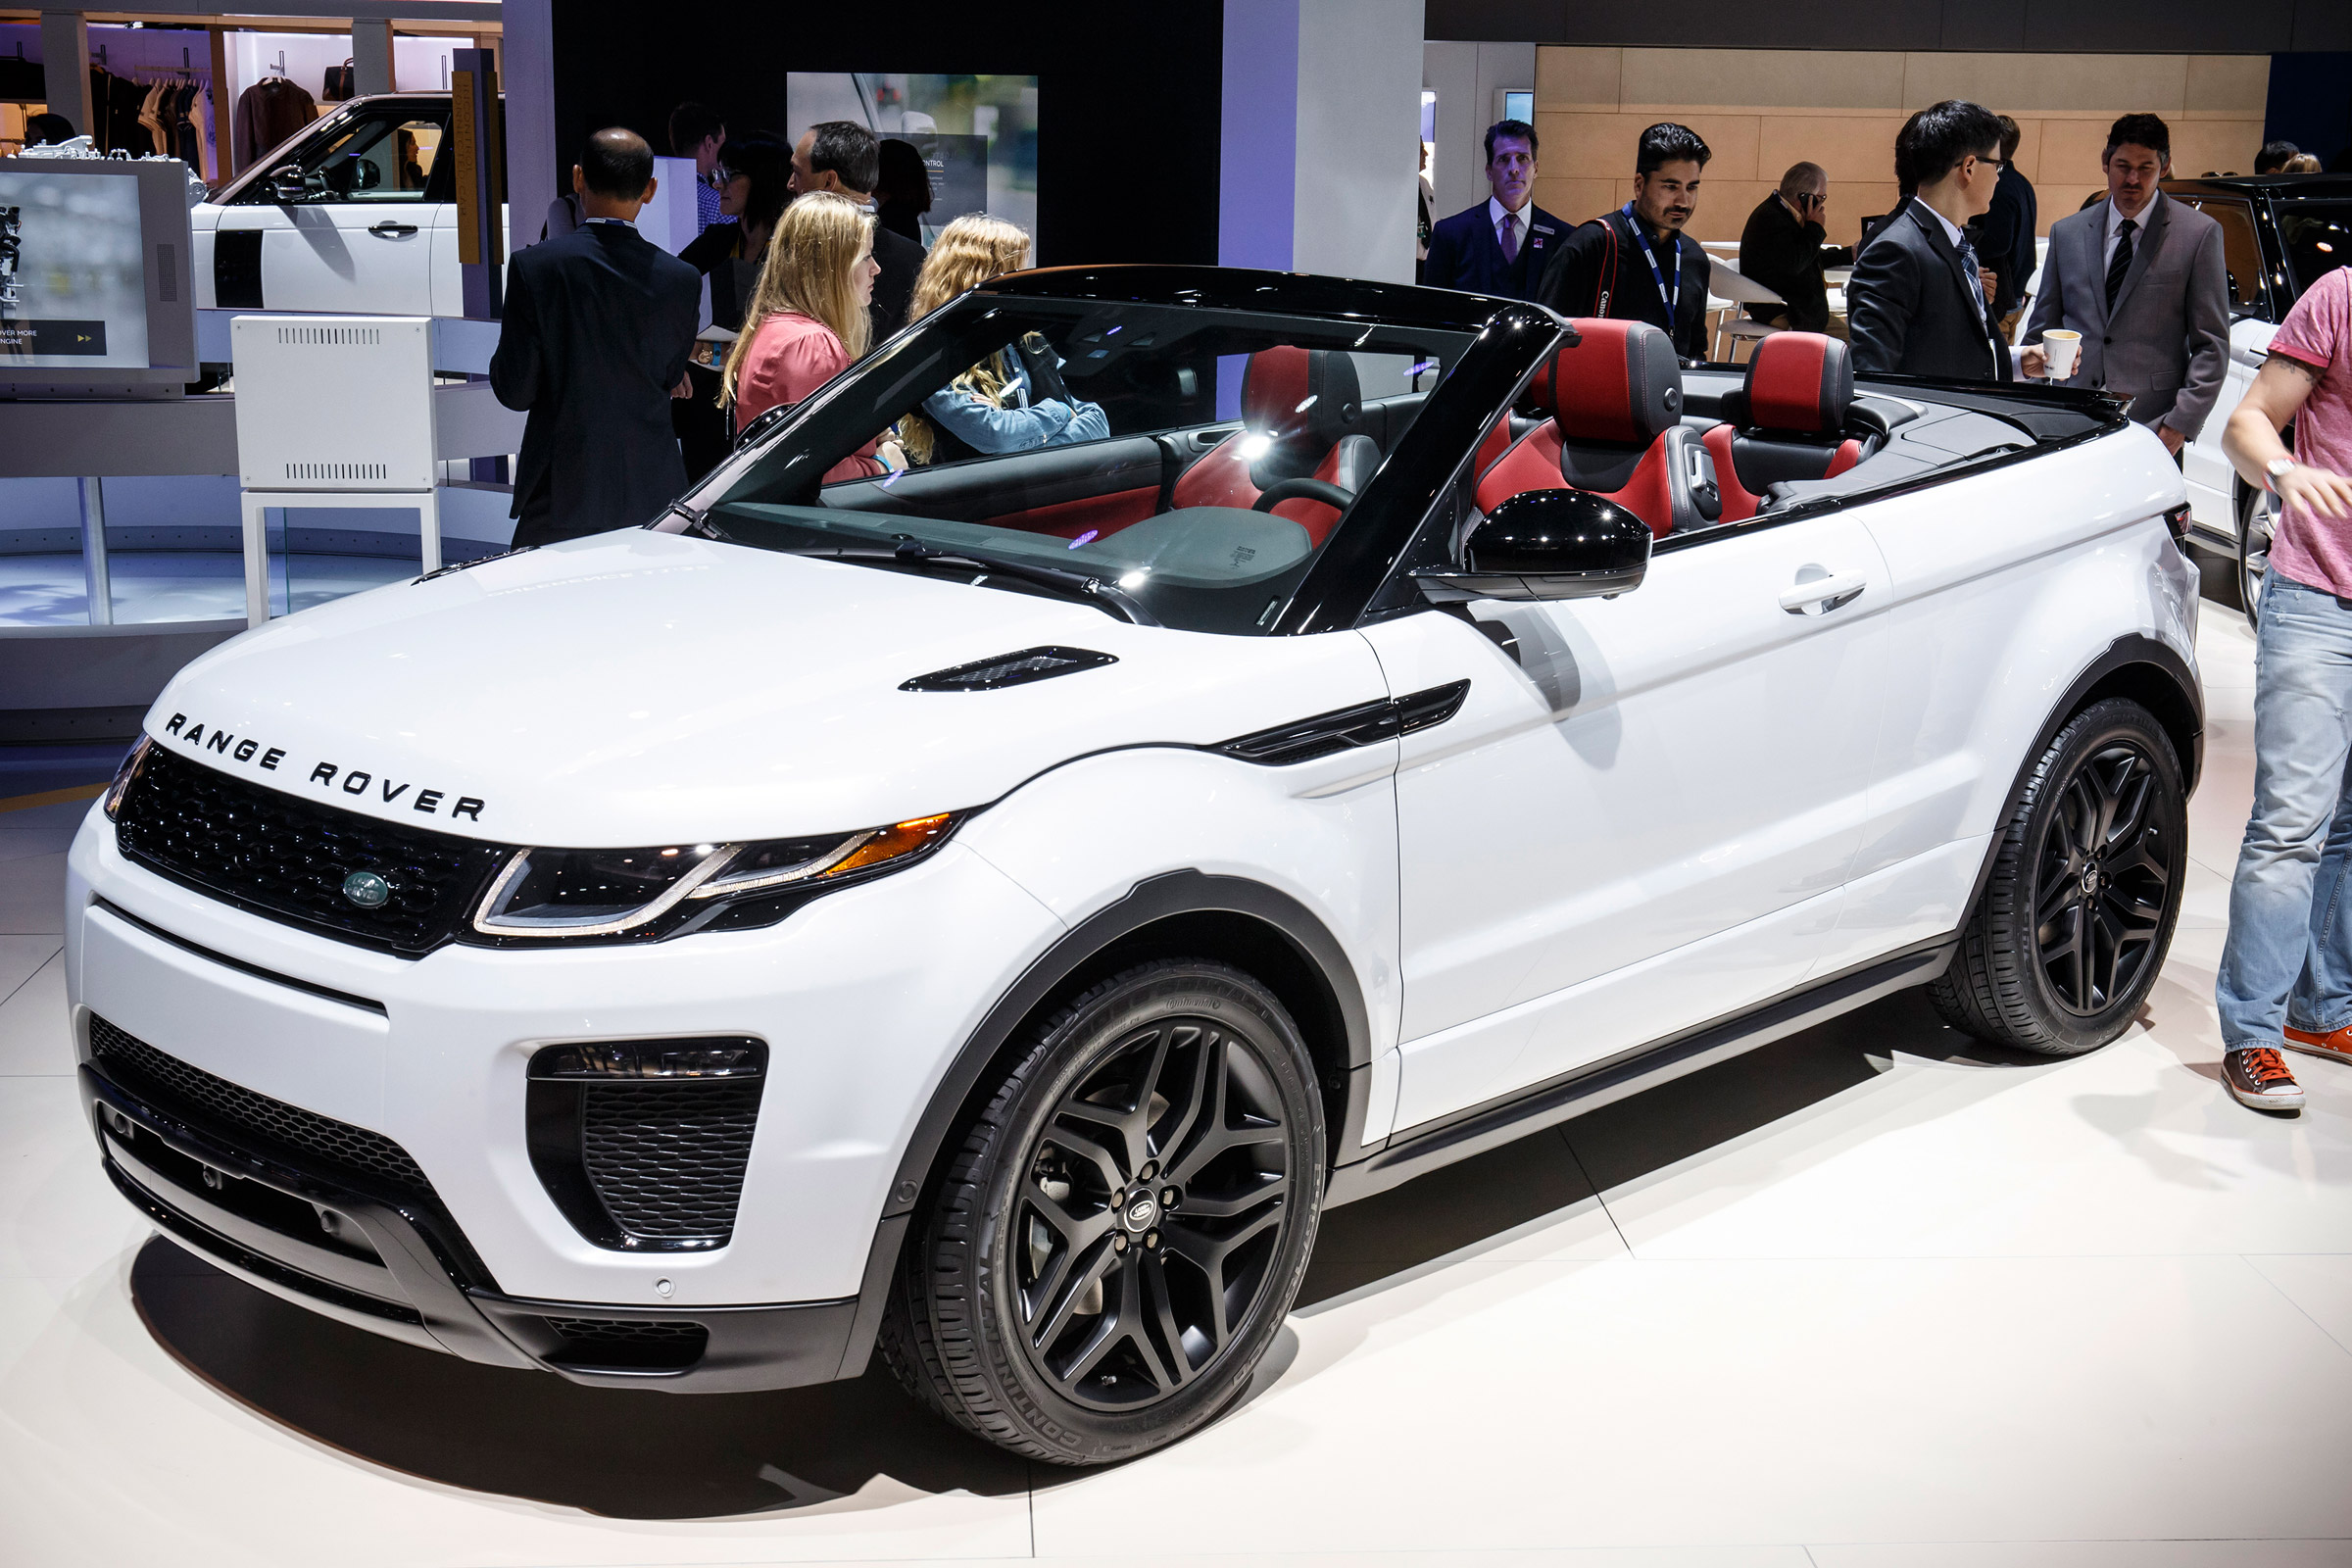 New 2016 Range Rover Evoque Convertible Is Here Pics Specs And Full Details Auto Express